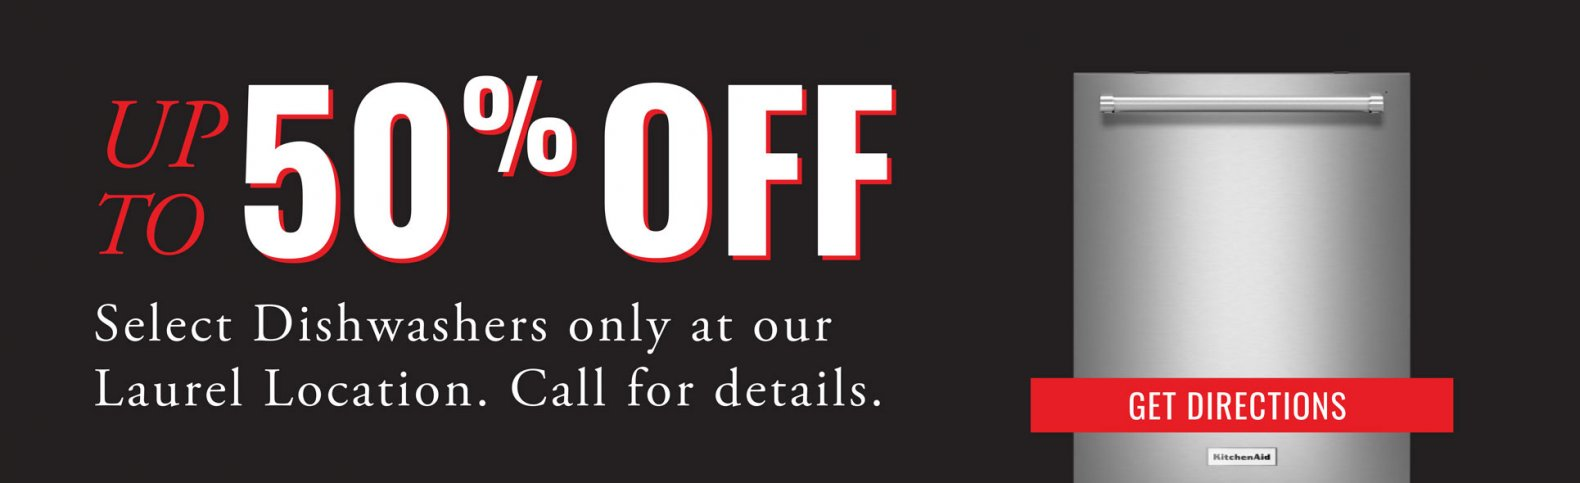 Save up to 50% off select Dishwashers only at our Laurel Location. Call for details.